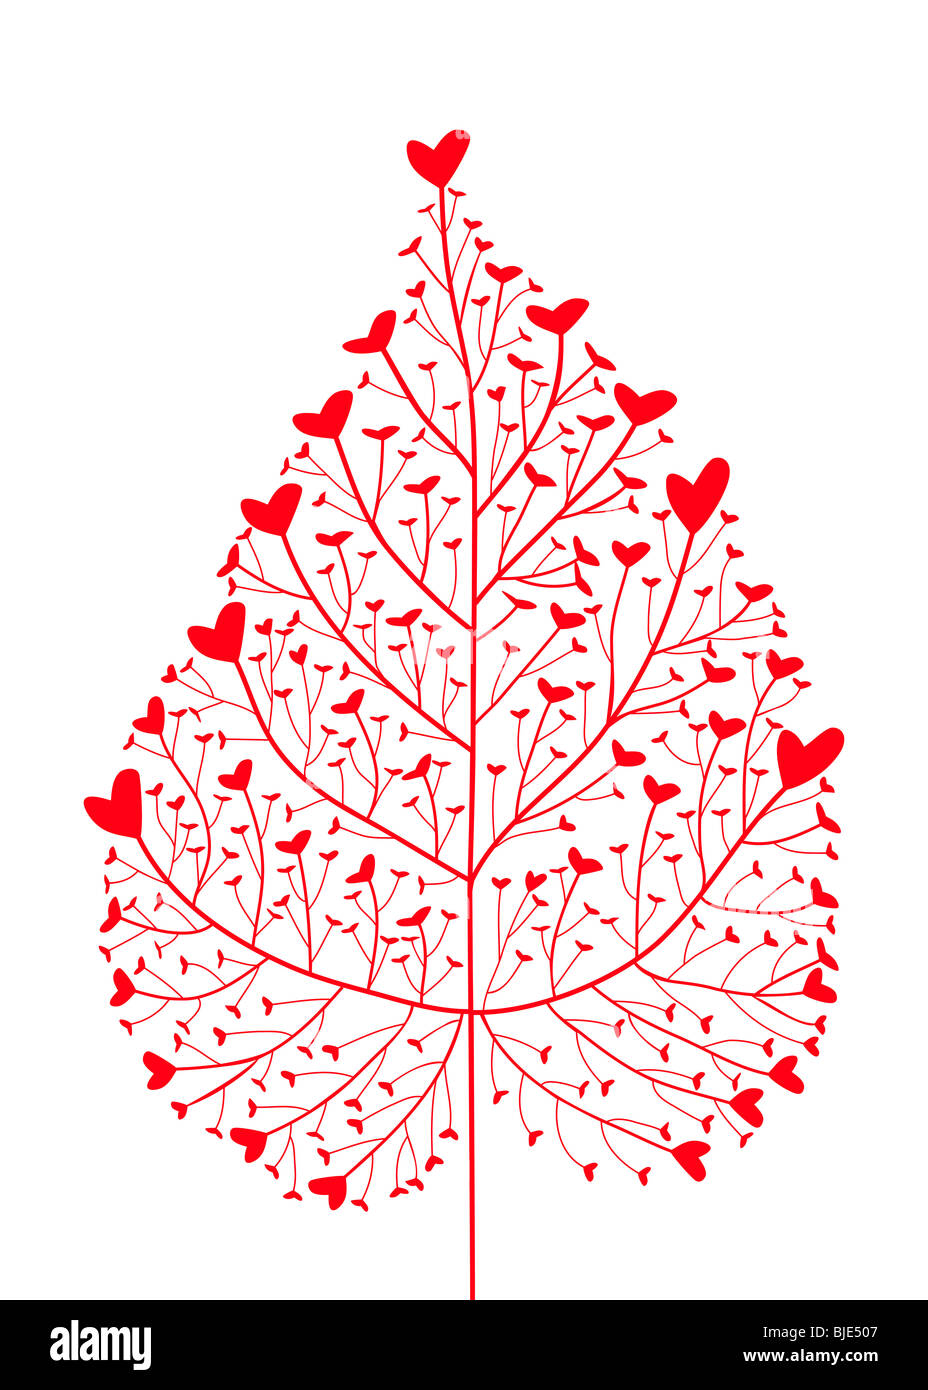 heart tree, heart leaf - Stock Image